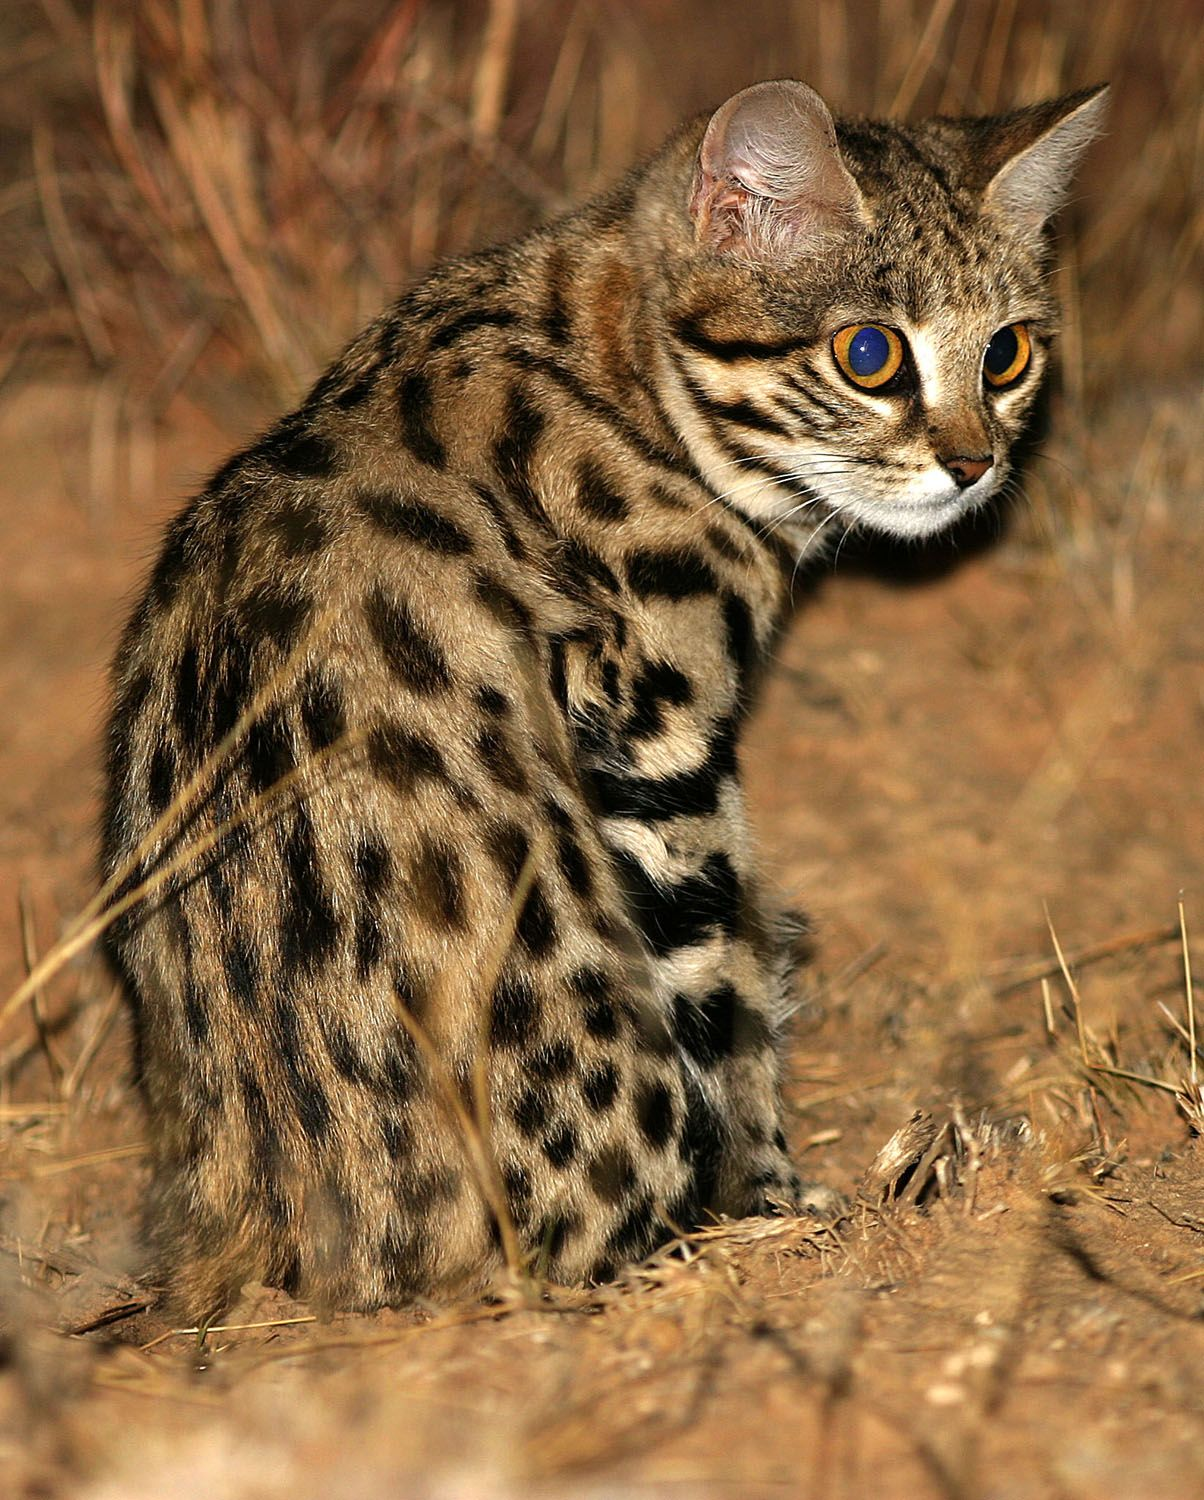 Black Footed Cat Great Cats World Park In 2020 Black Footed Cat Spotted Cat Rusty Spotted Cat